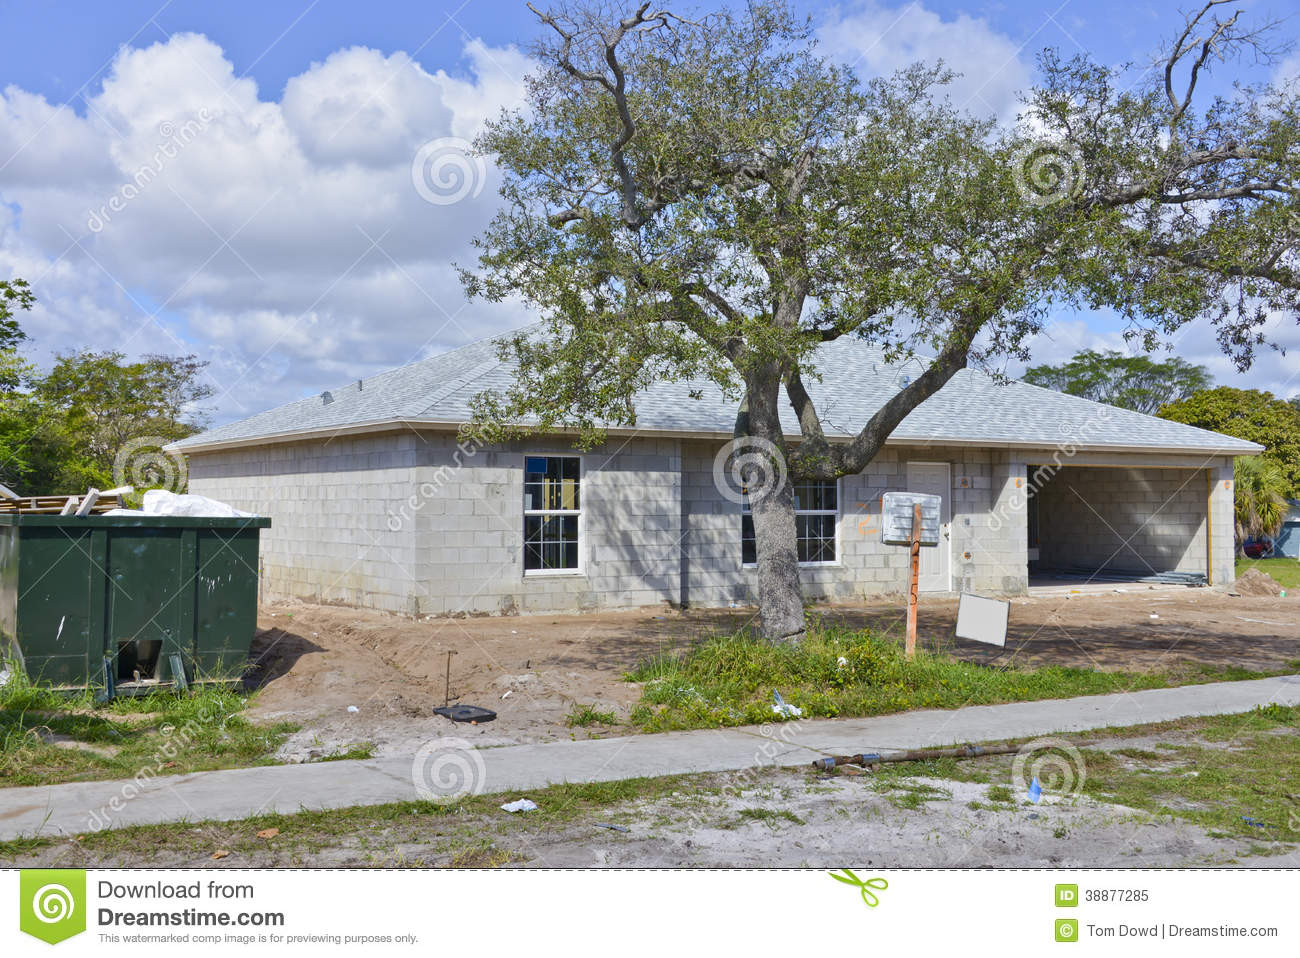 Family Home Under Construction Stock Photo Image 38877285